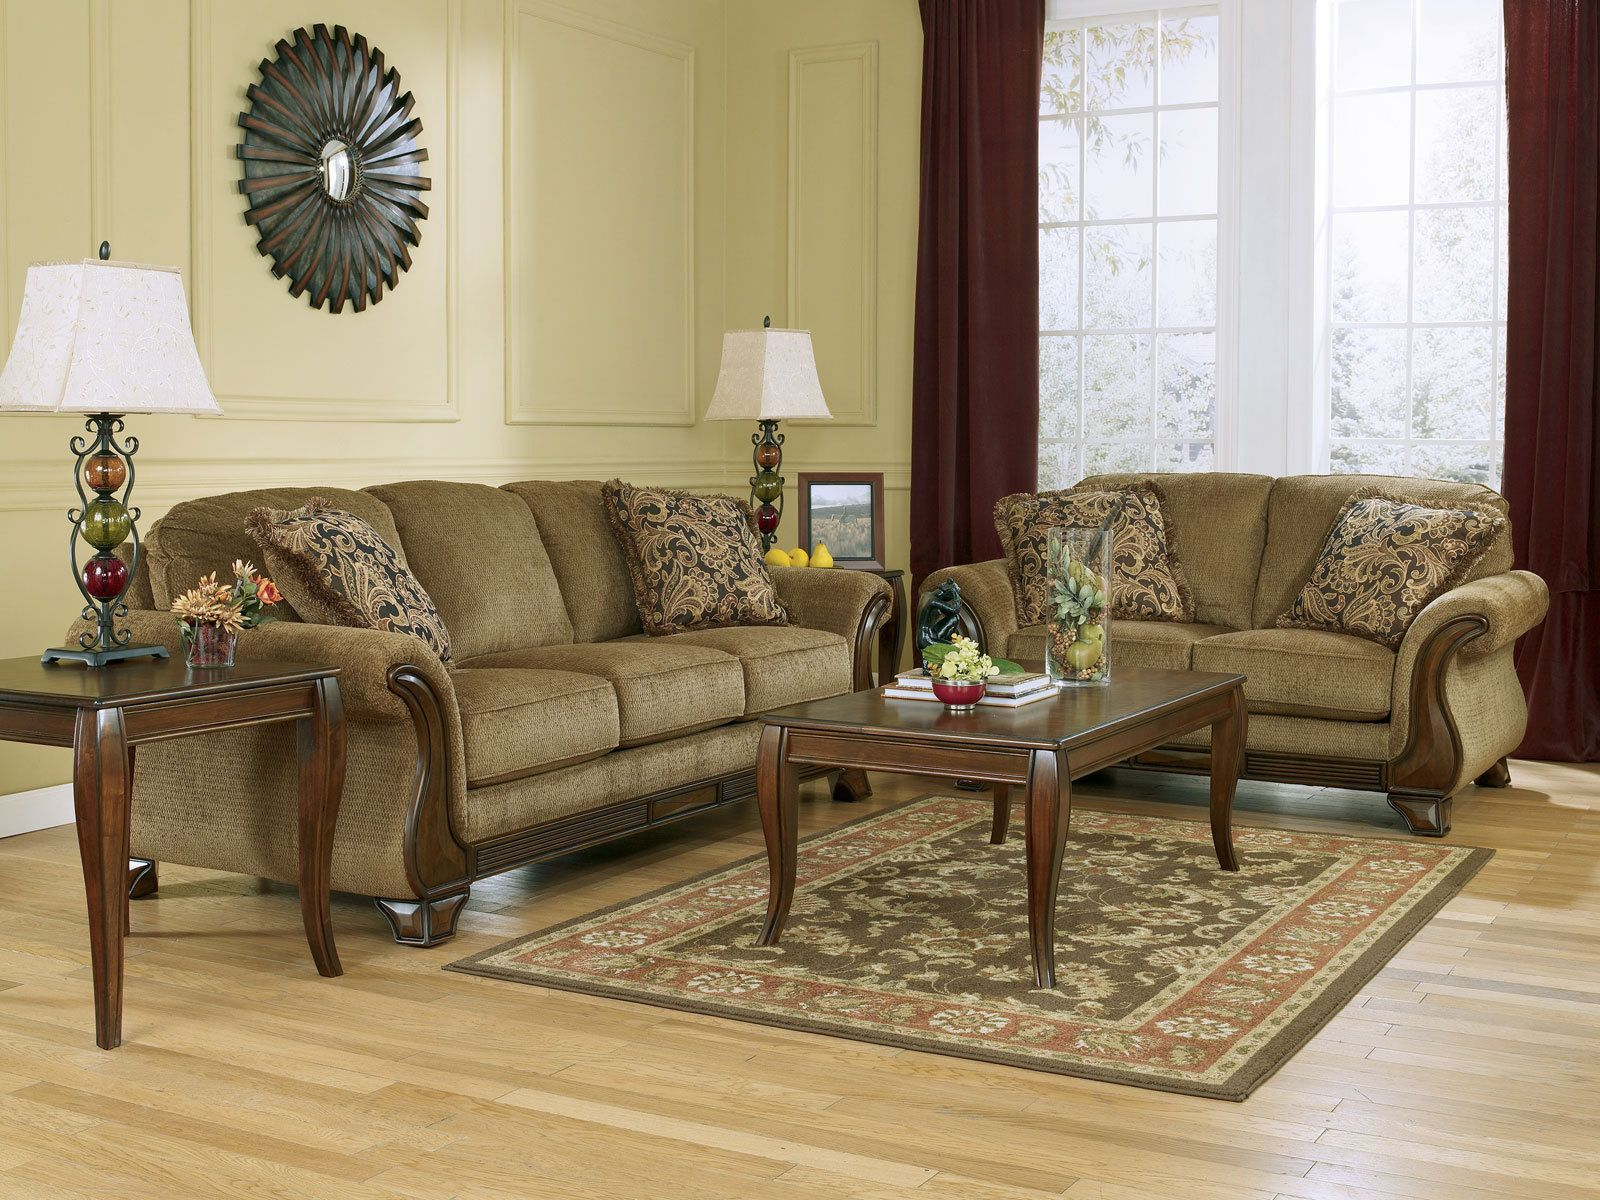 Santiago Traditional Brown Fabric Wood Trim Sofa Couch Set Living Room  Furniture | EBay